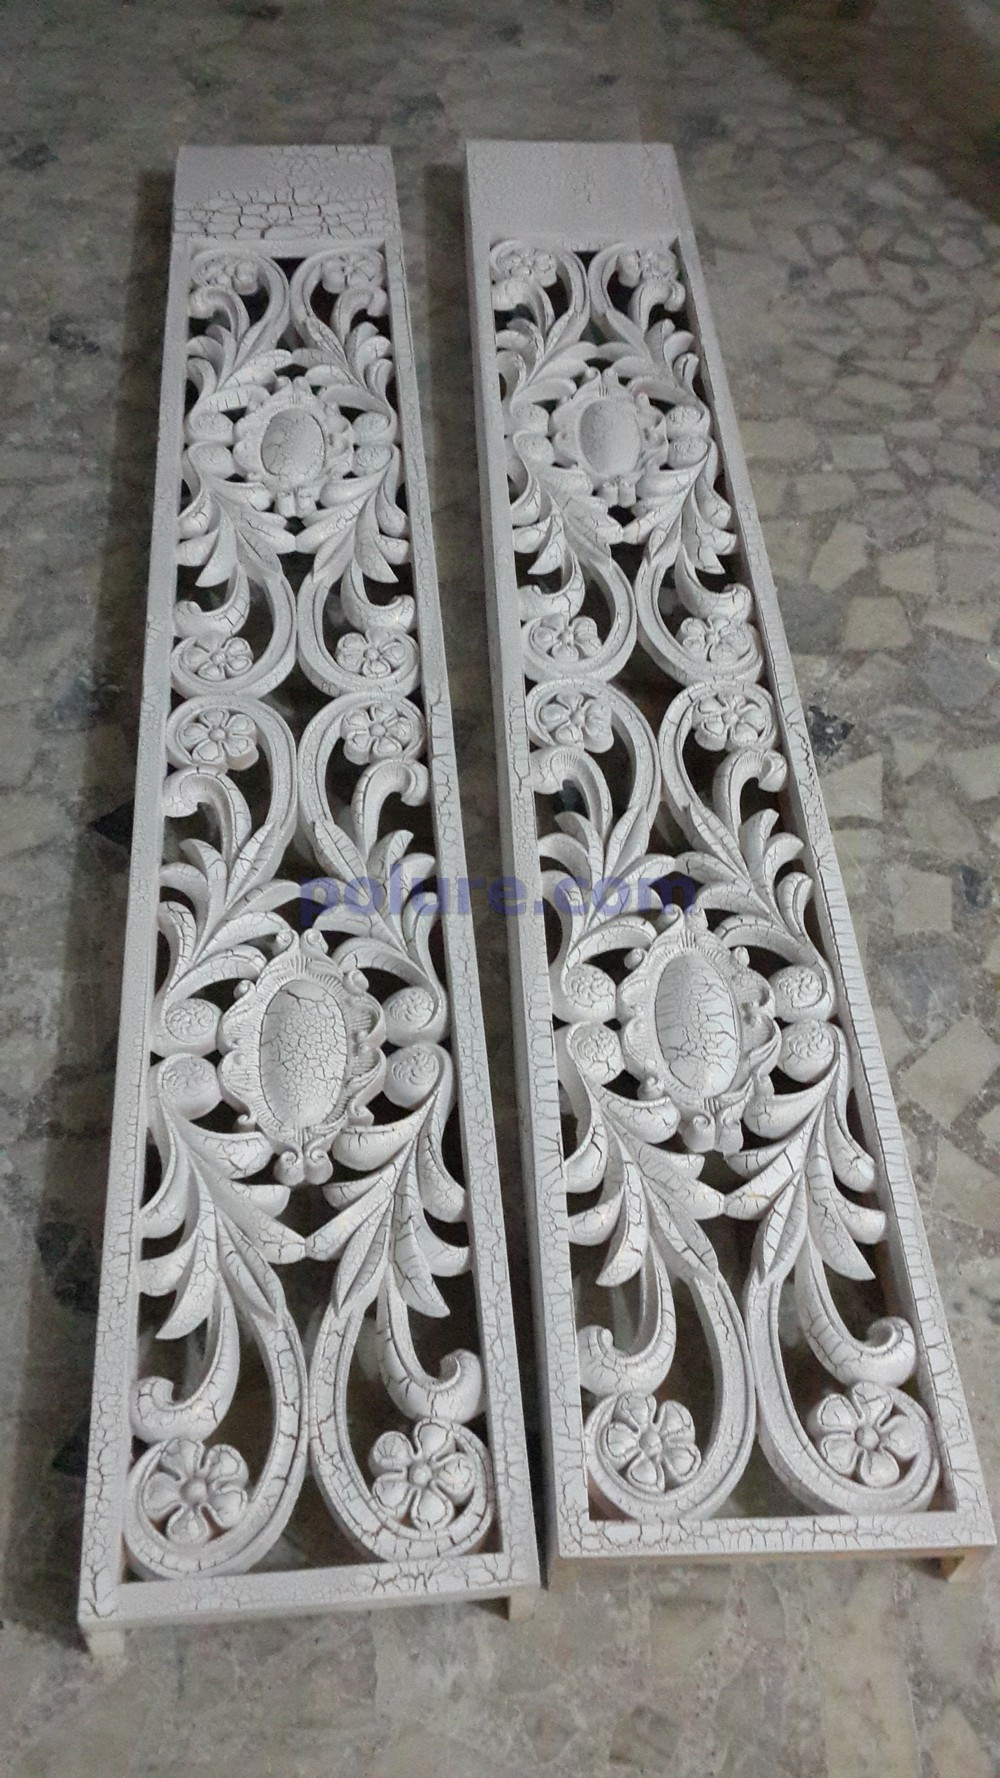 p-8107-polyurethane-decorative-floral-pattern-goes-with-cracking-paint-and-wood-stone-like-imitation-pu-moulding-separator-panel-price (16)